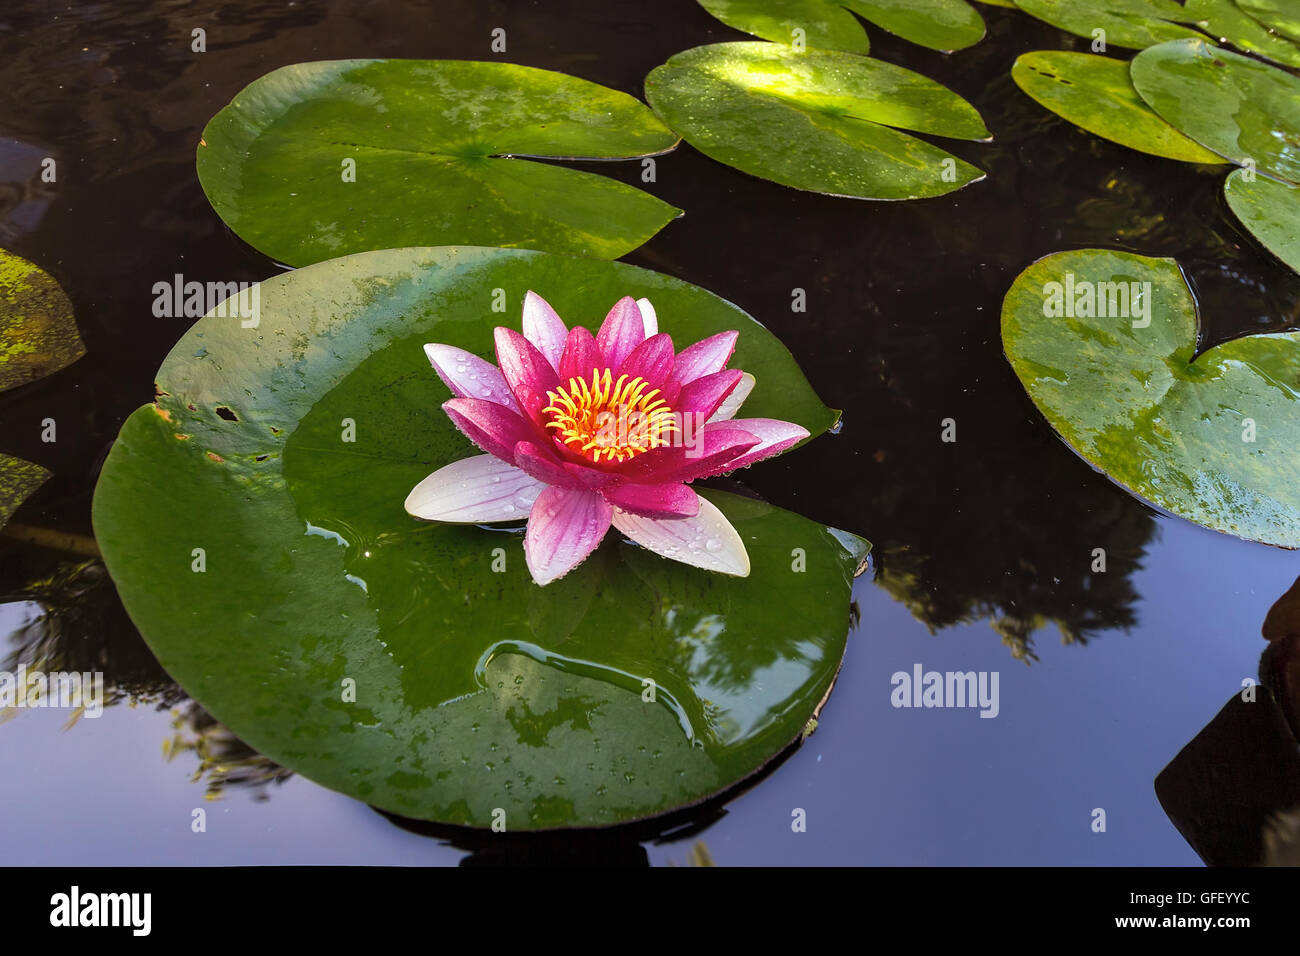 Lilypad stock photos lilypad stock images alamy pink water lily flowers in bloom with lilypad in garden backyard pond stock image izmirmasajfo Images